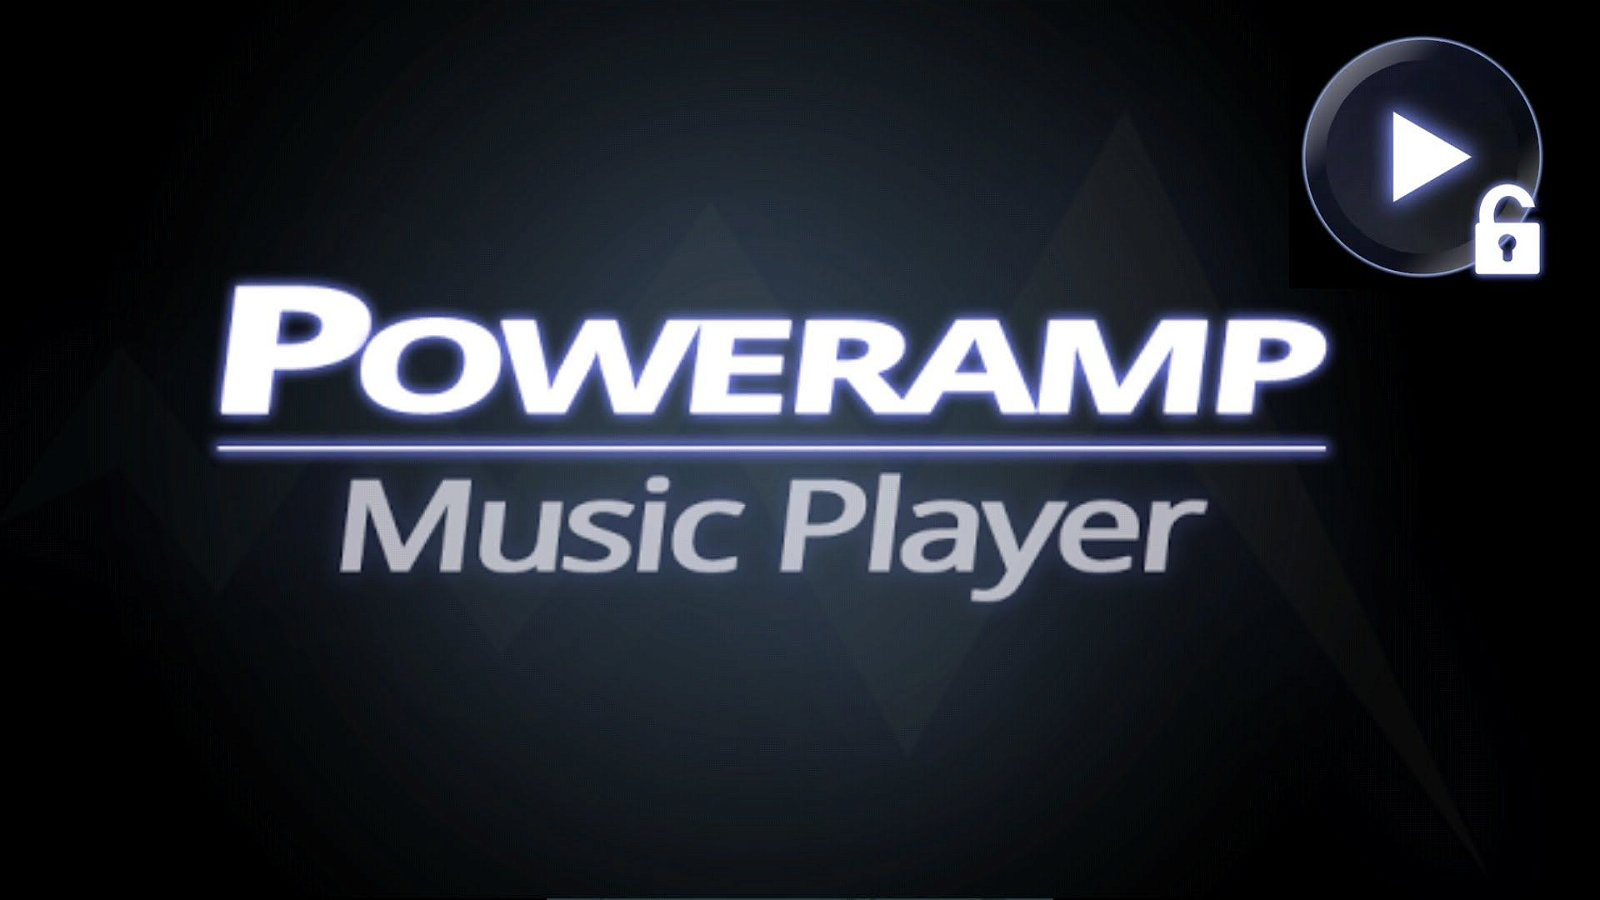 Download Poweramp v3 Beta APK for Android 4